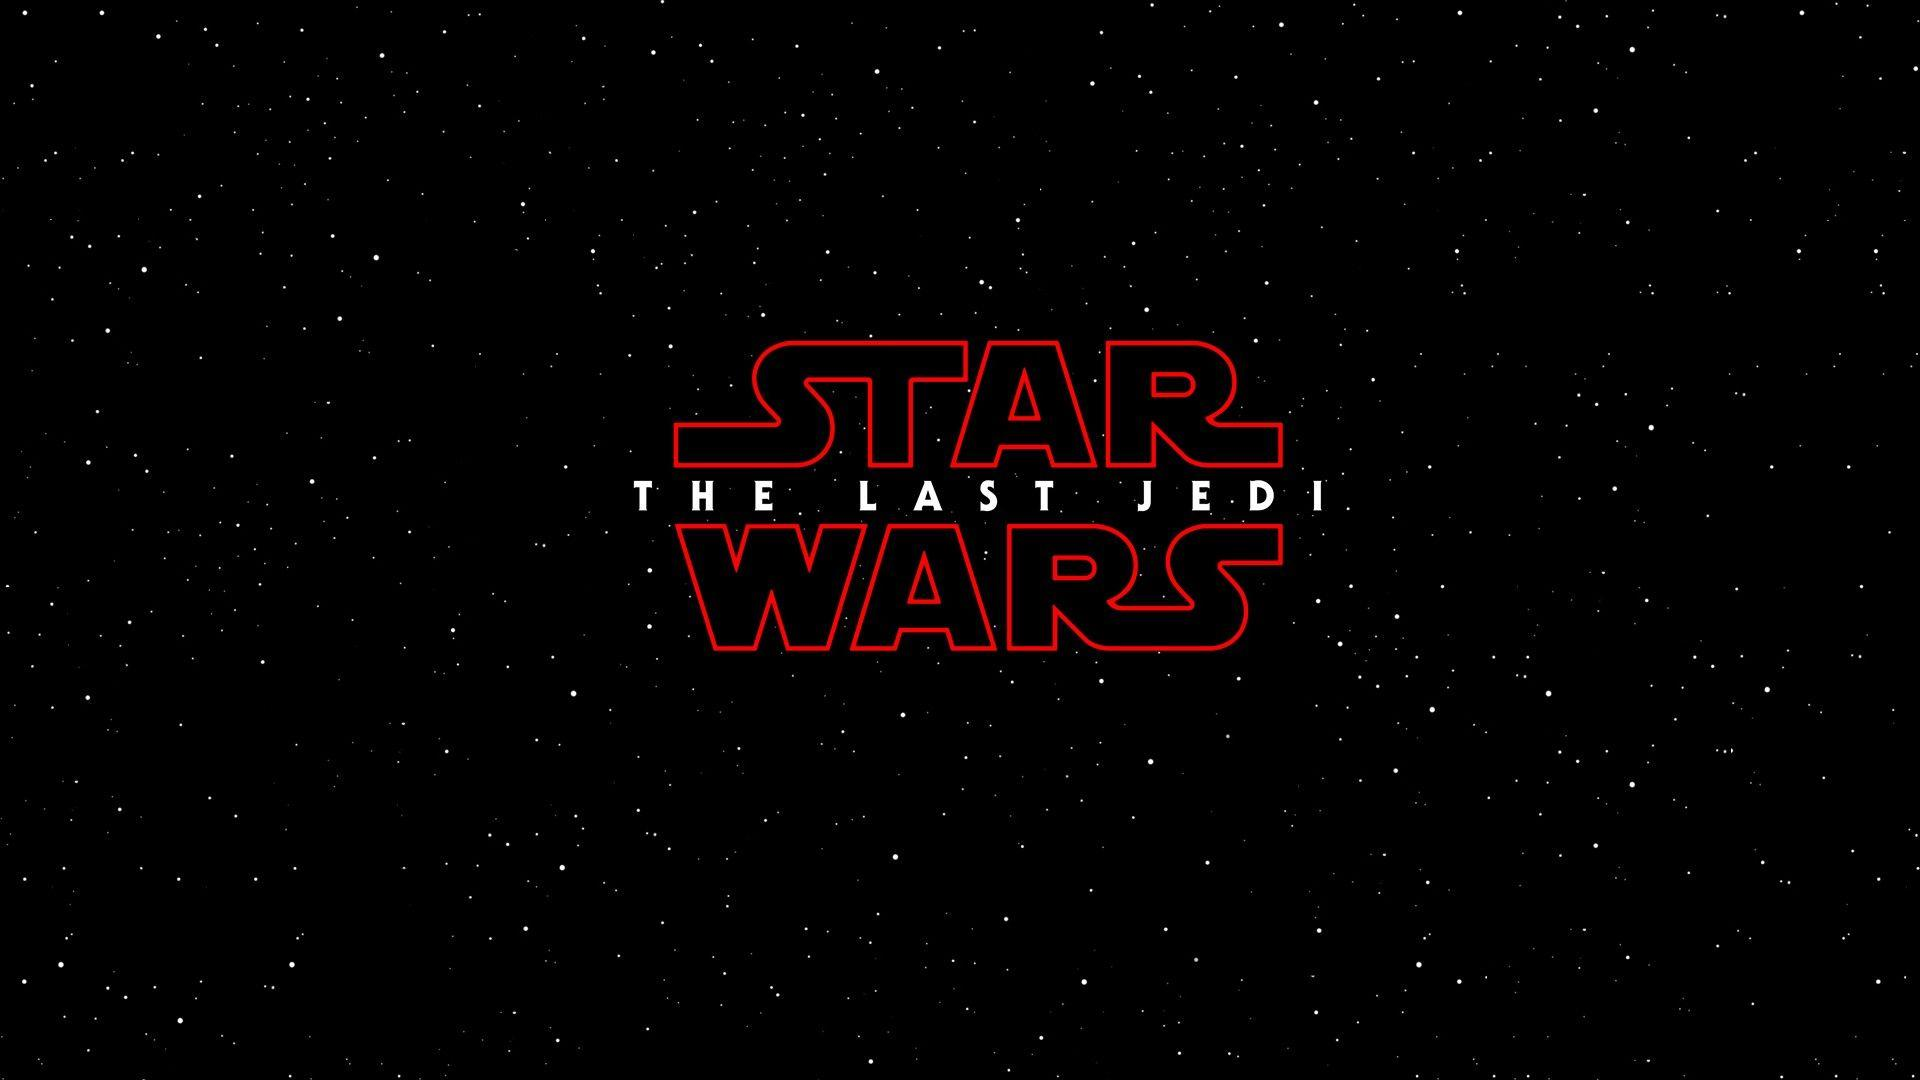 star wars: the last jedi wallpapers - wallpaper cave